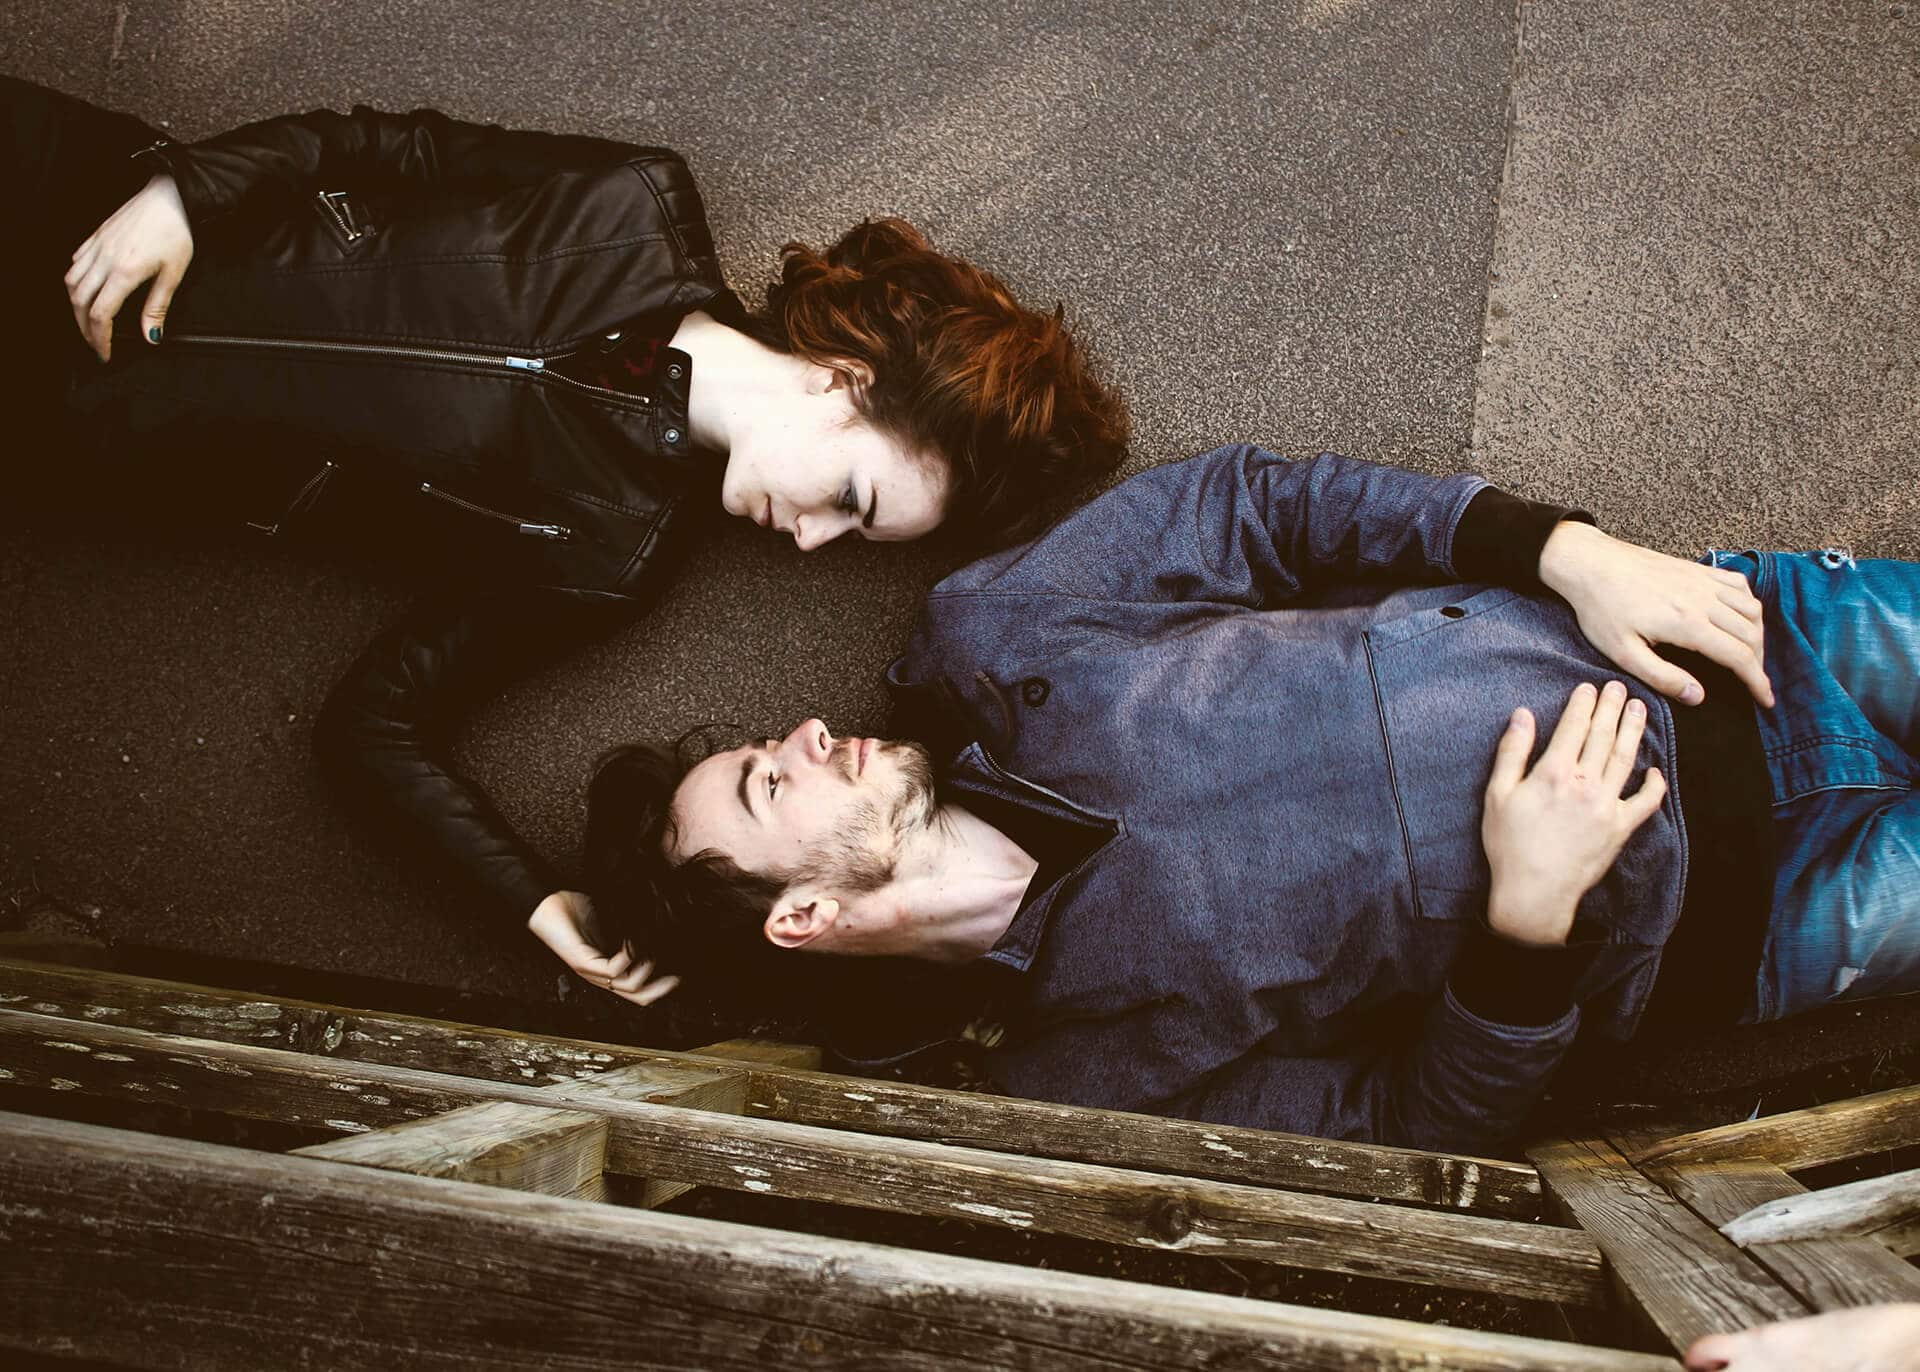 woman and man laying on the ground